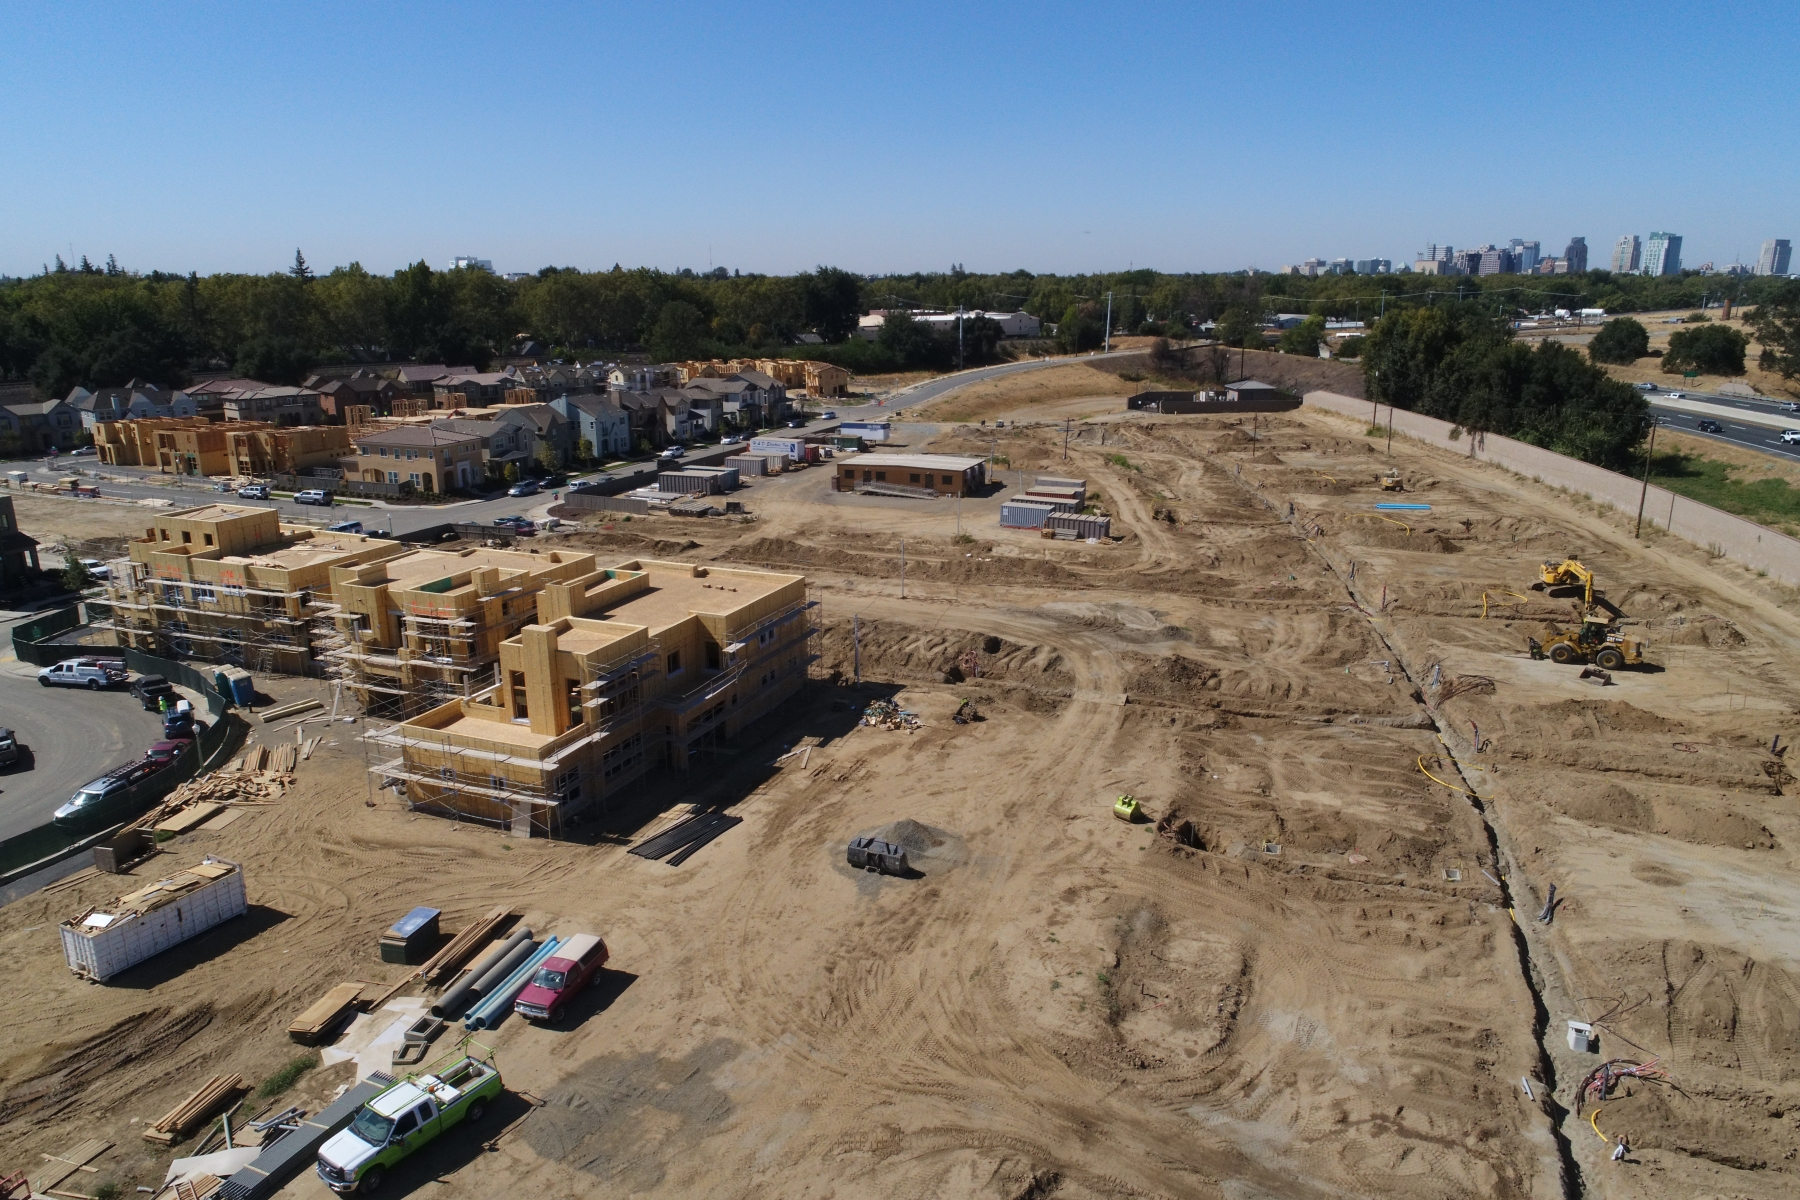 aerial view of development site with buildings and lots at different stages of construction